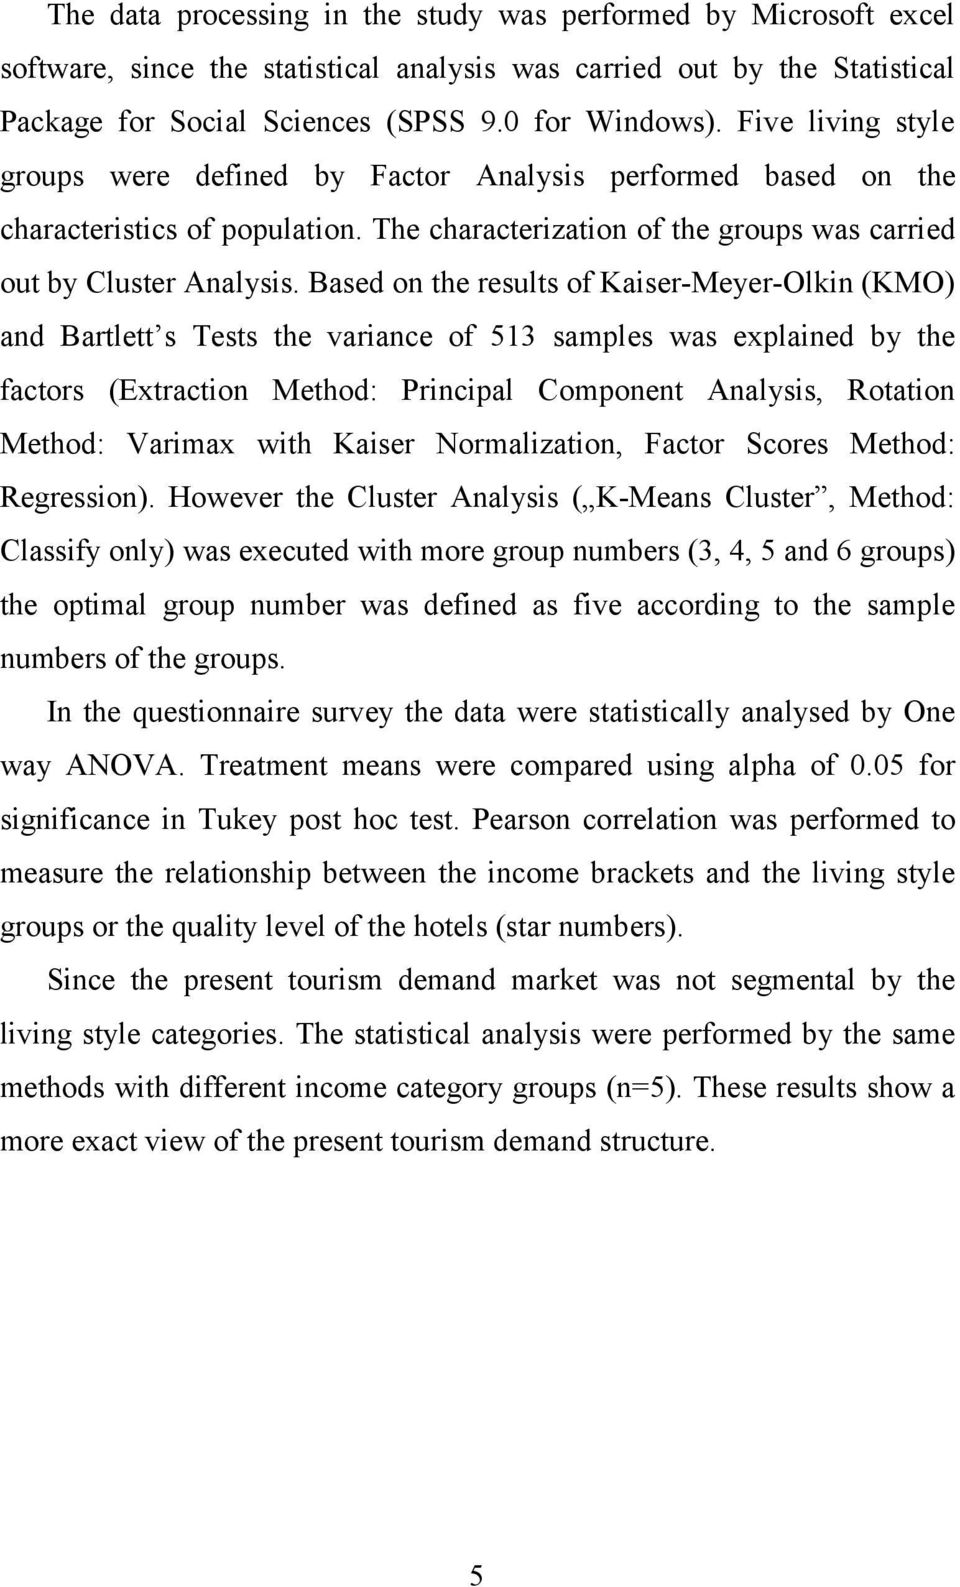 Based on the results of Kaiser-Meyer-Olkin (KMO) and Bartlett s Tests the variance of 513 samples was explained by the factors (Extraction Method: Principal Component Analysis, Rotation Method: